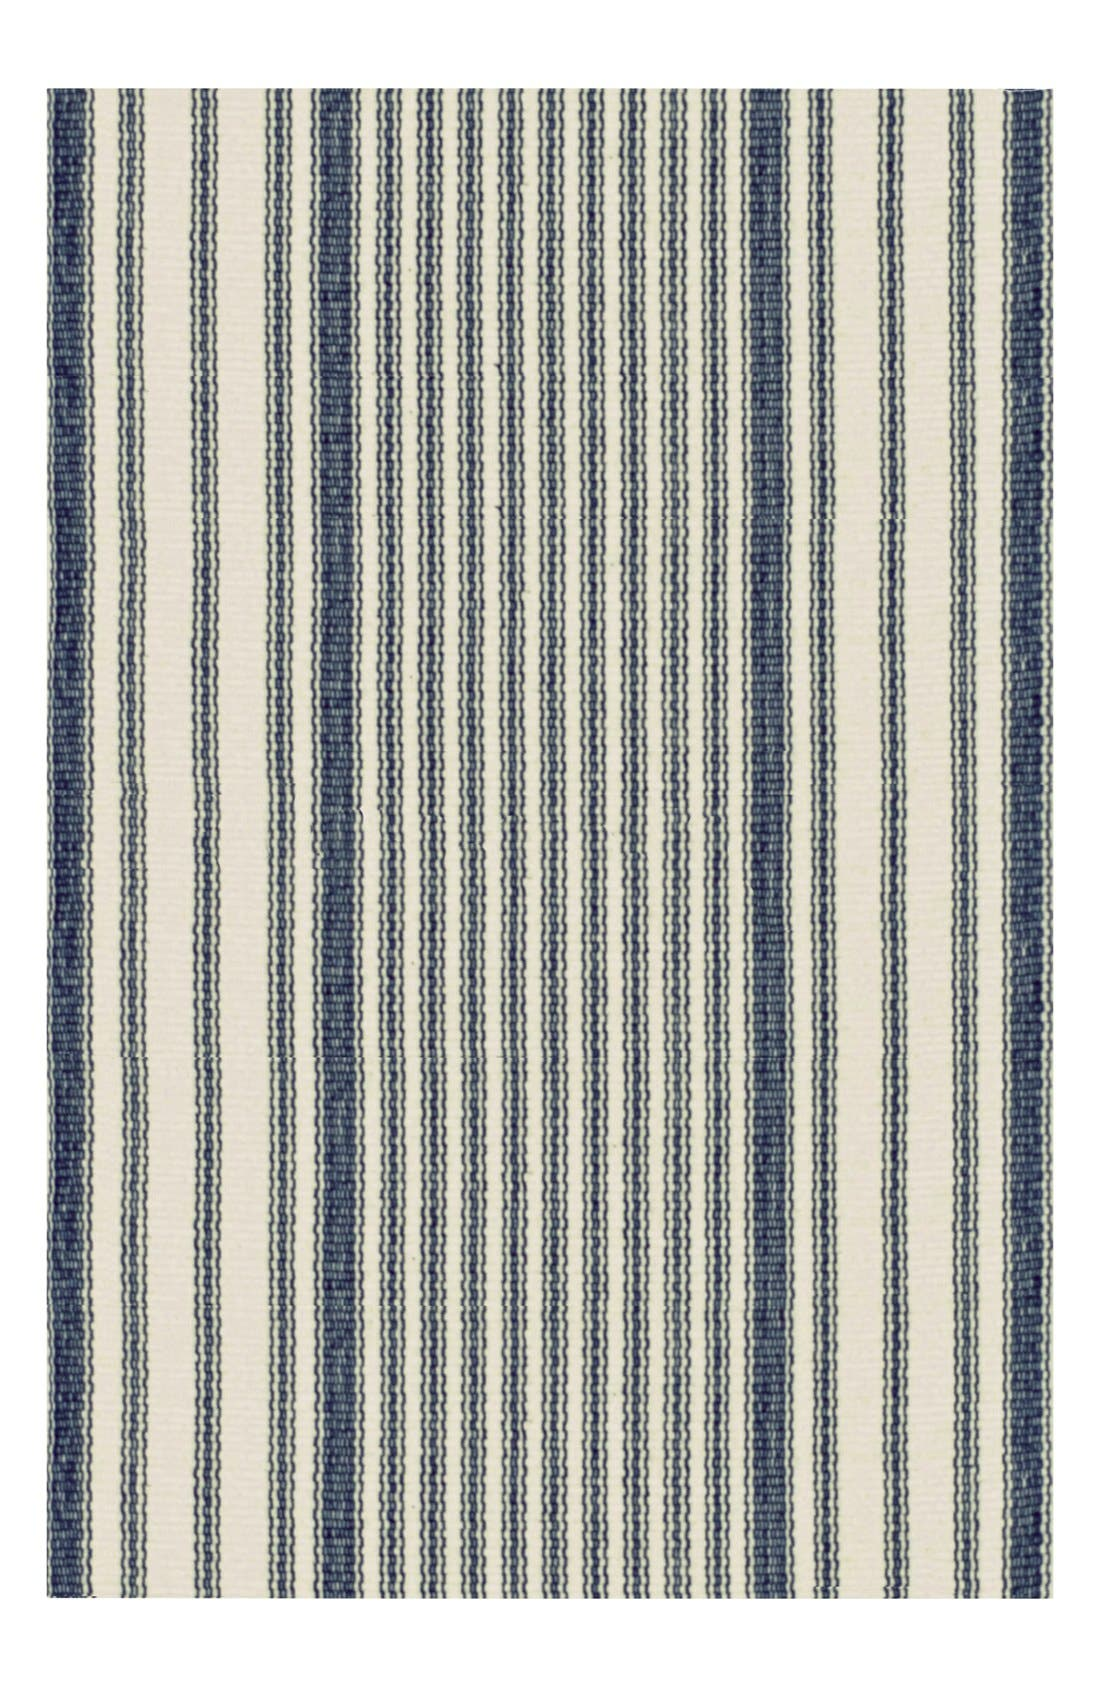 DASH & ALBERT 'Mattress Ticking' Rug